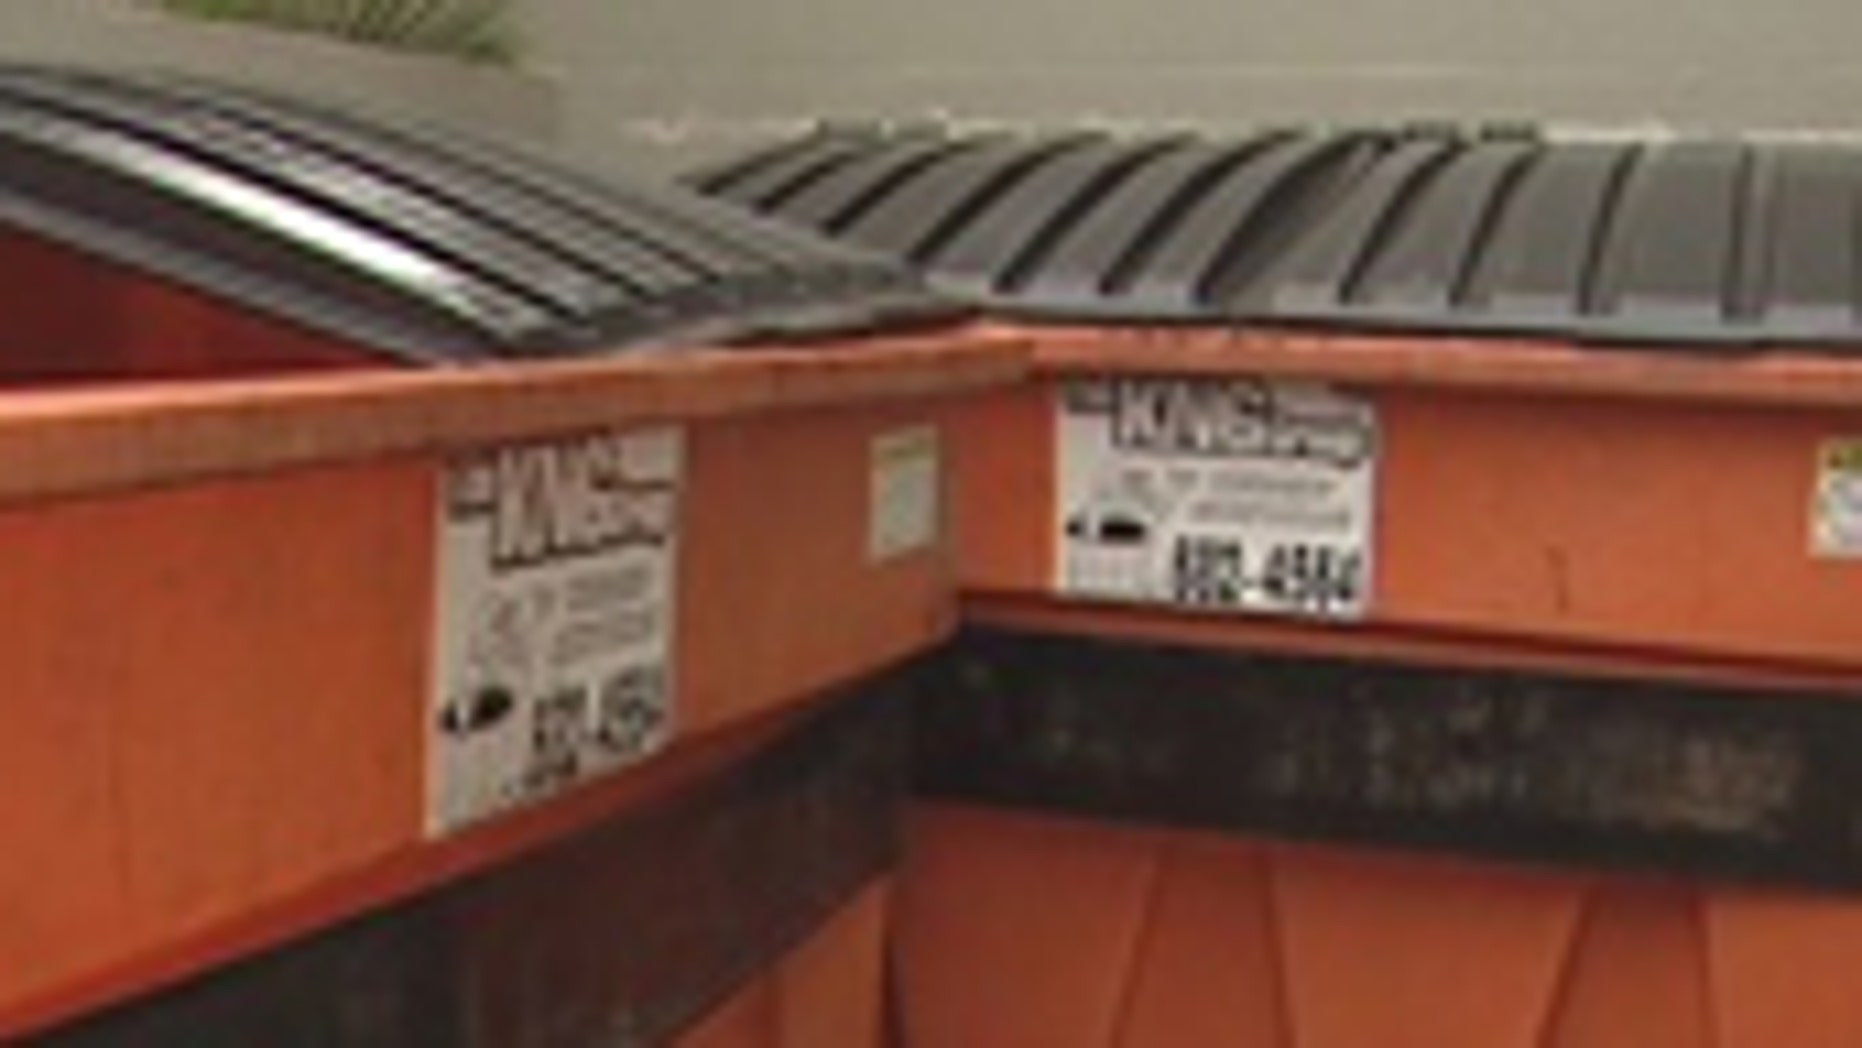 Mar. 12, 2012: Police search for clues after a child's fingers were found in this dumpster in Hawaii.